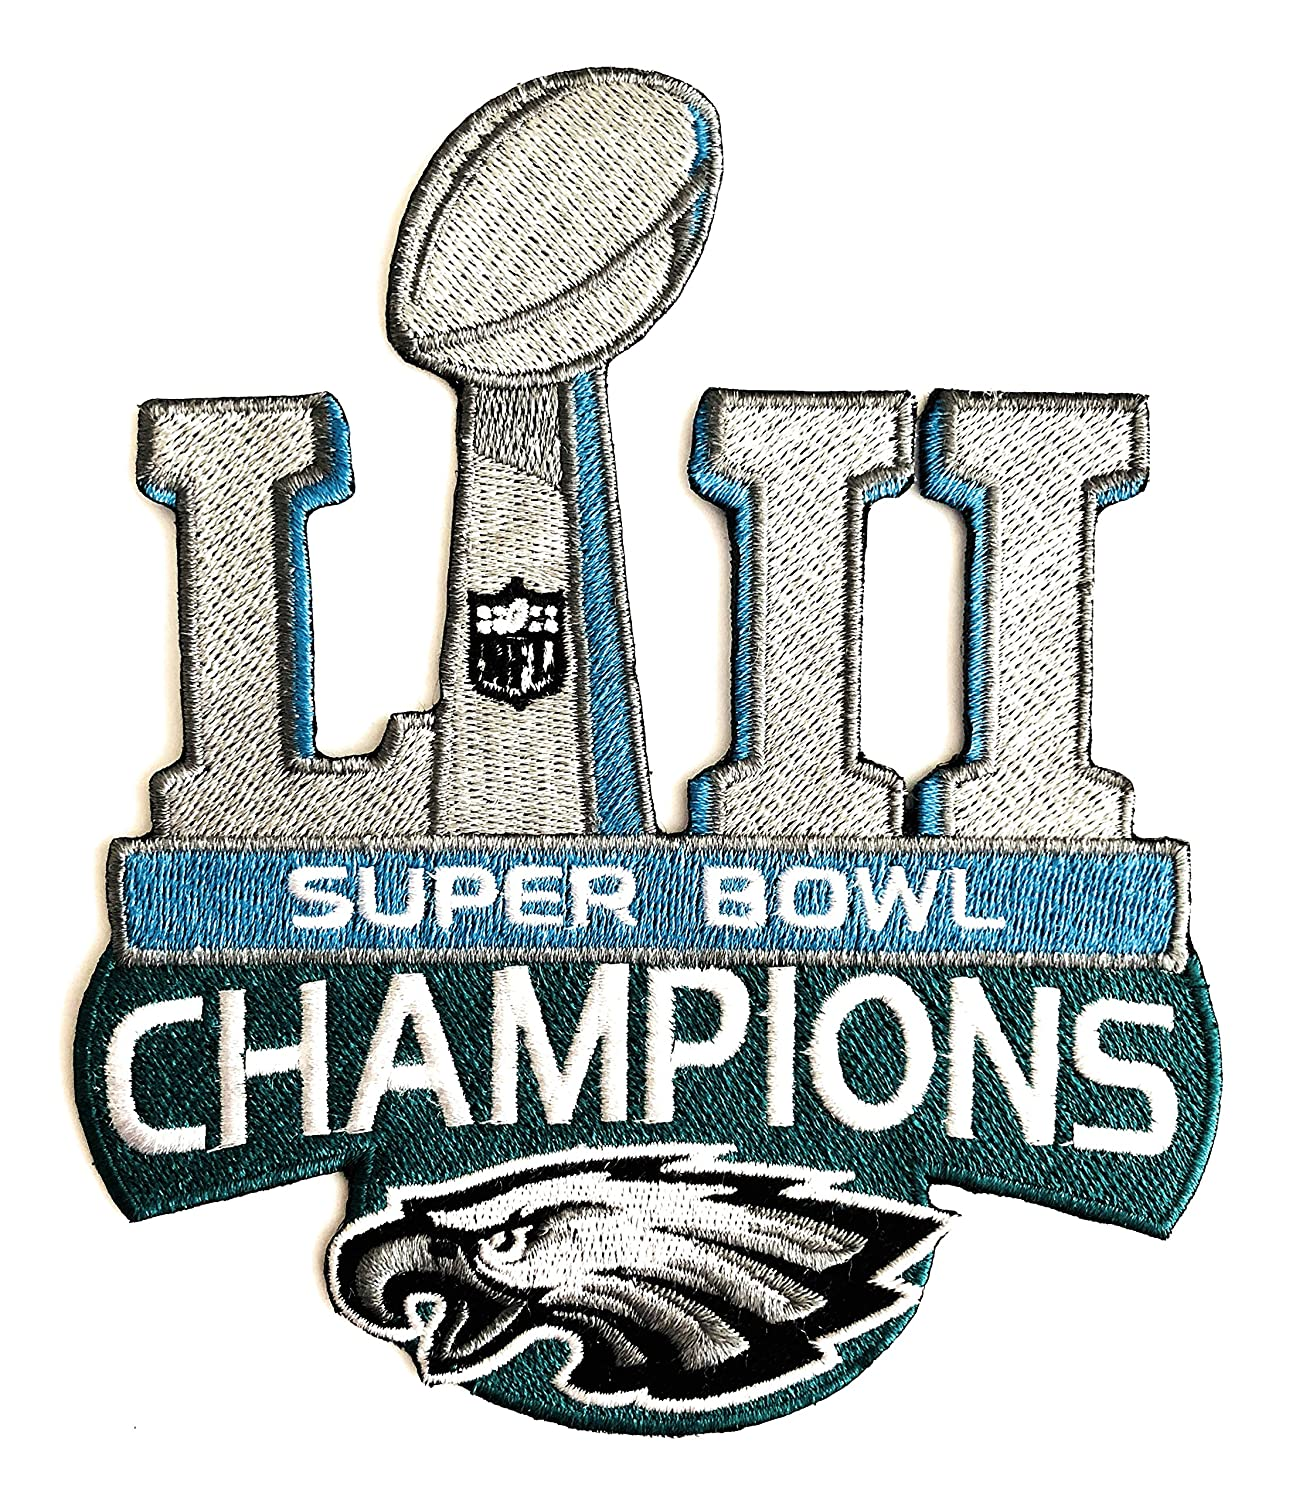 Football 2018 Super Bowl 52 LII Eagles Champions Patch Large 5 x 6 Eagles LII Champs Logo Patch